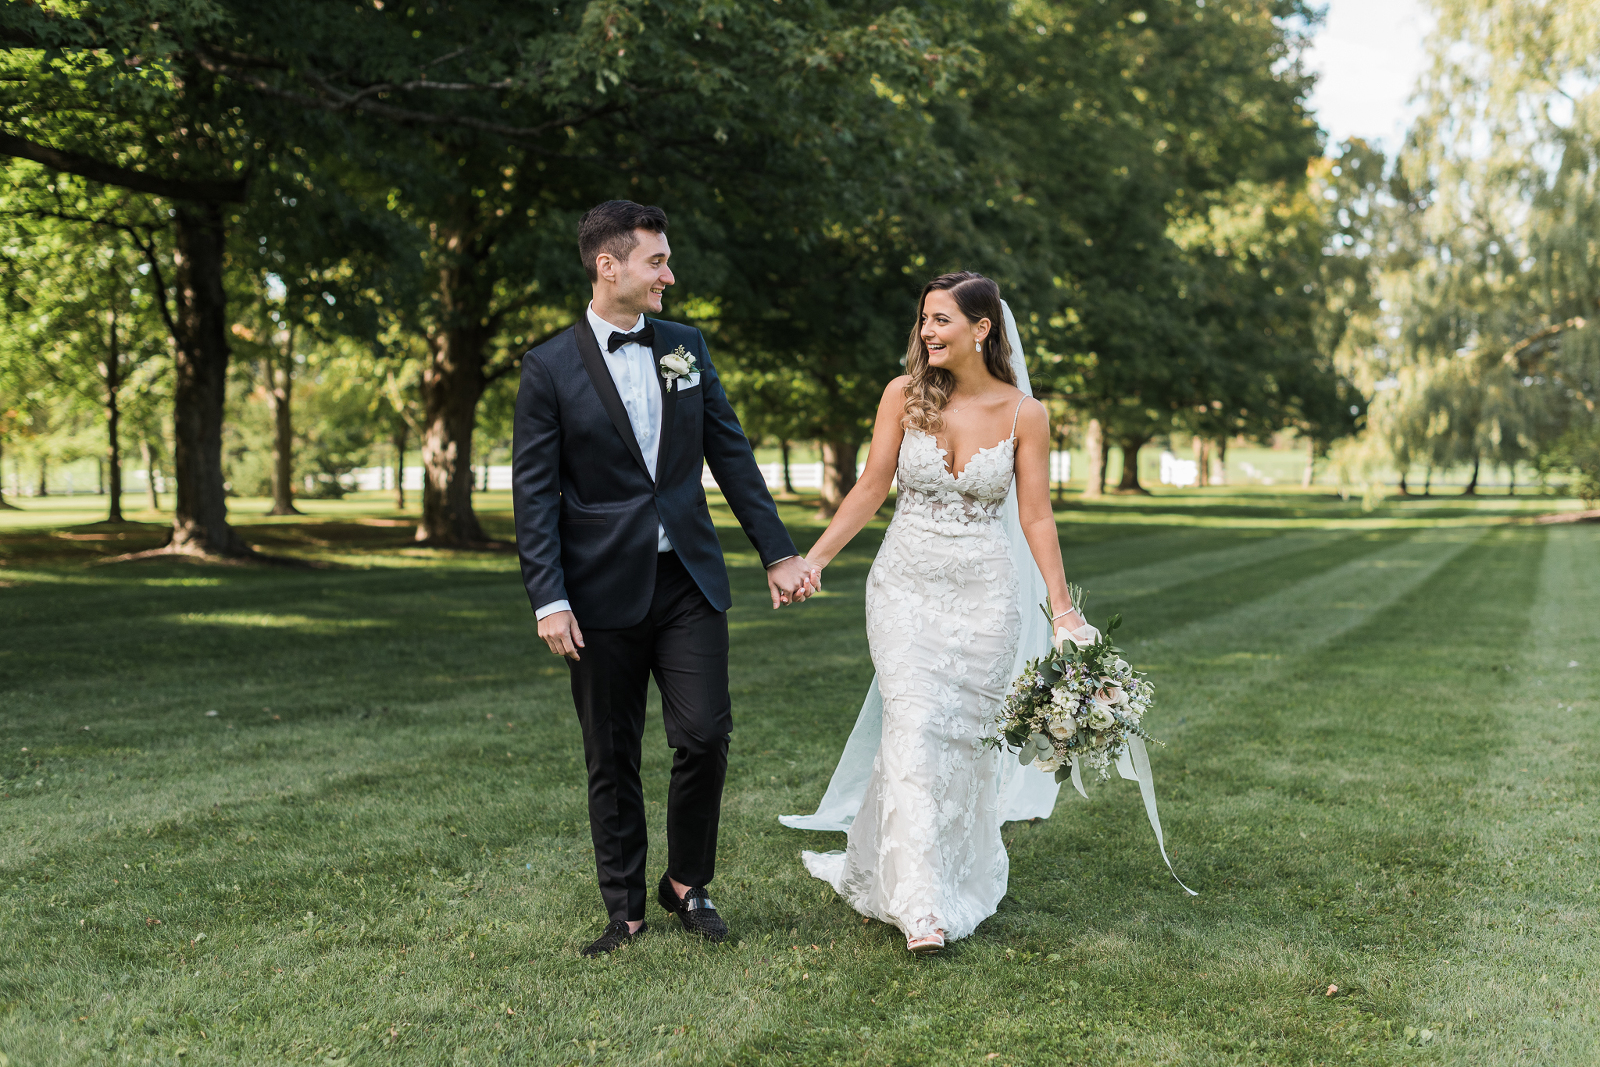 Bride and groom walking on grass at Belcroft Estates wedding venue after their ceremony